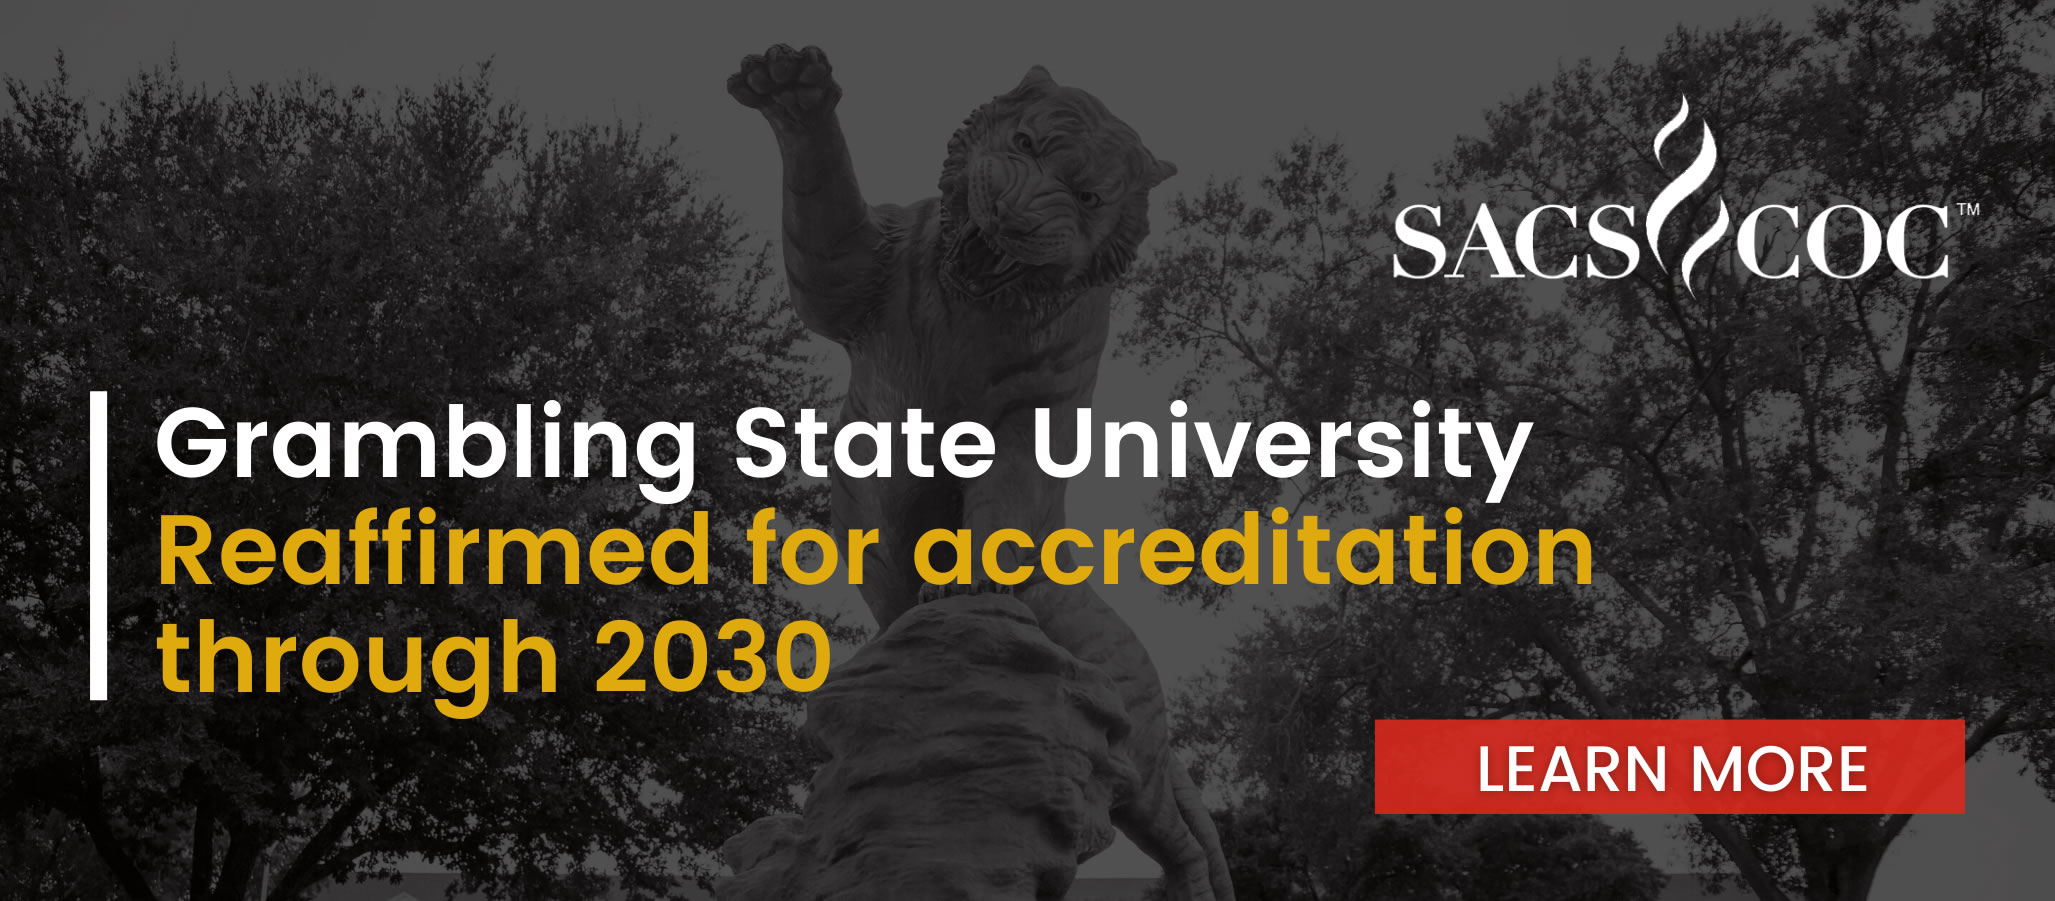 Grambling State's Accreditation Reaffirmed by SACSCOC Slide